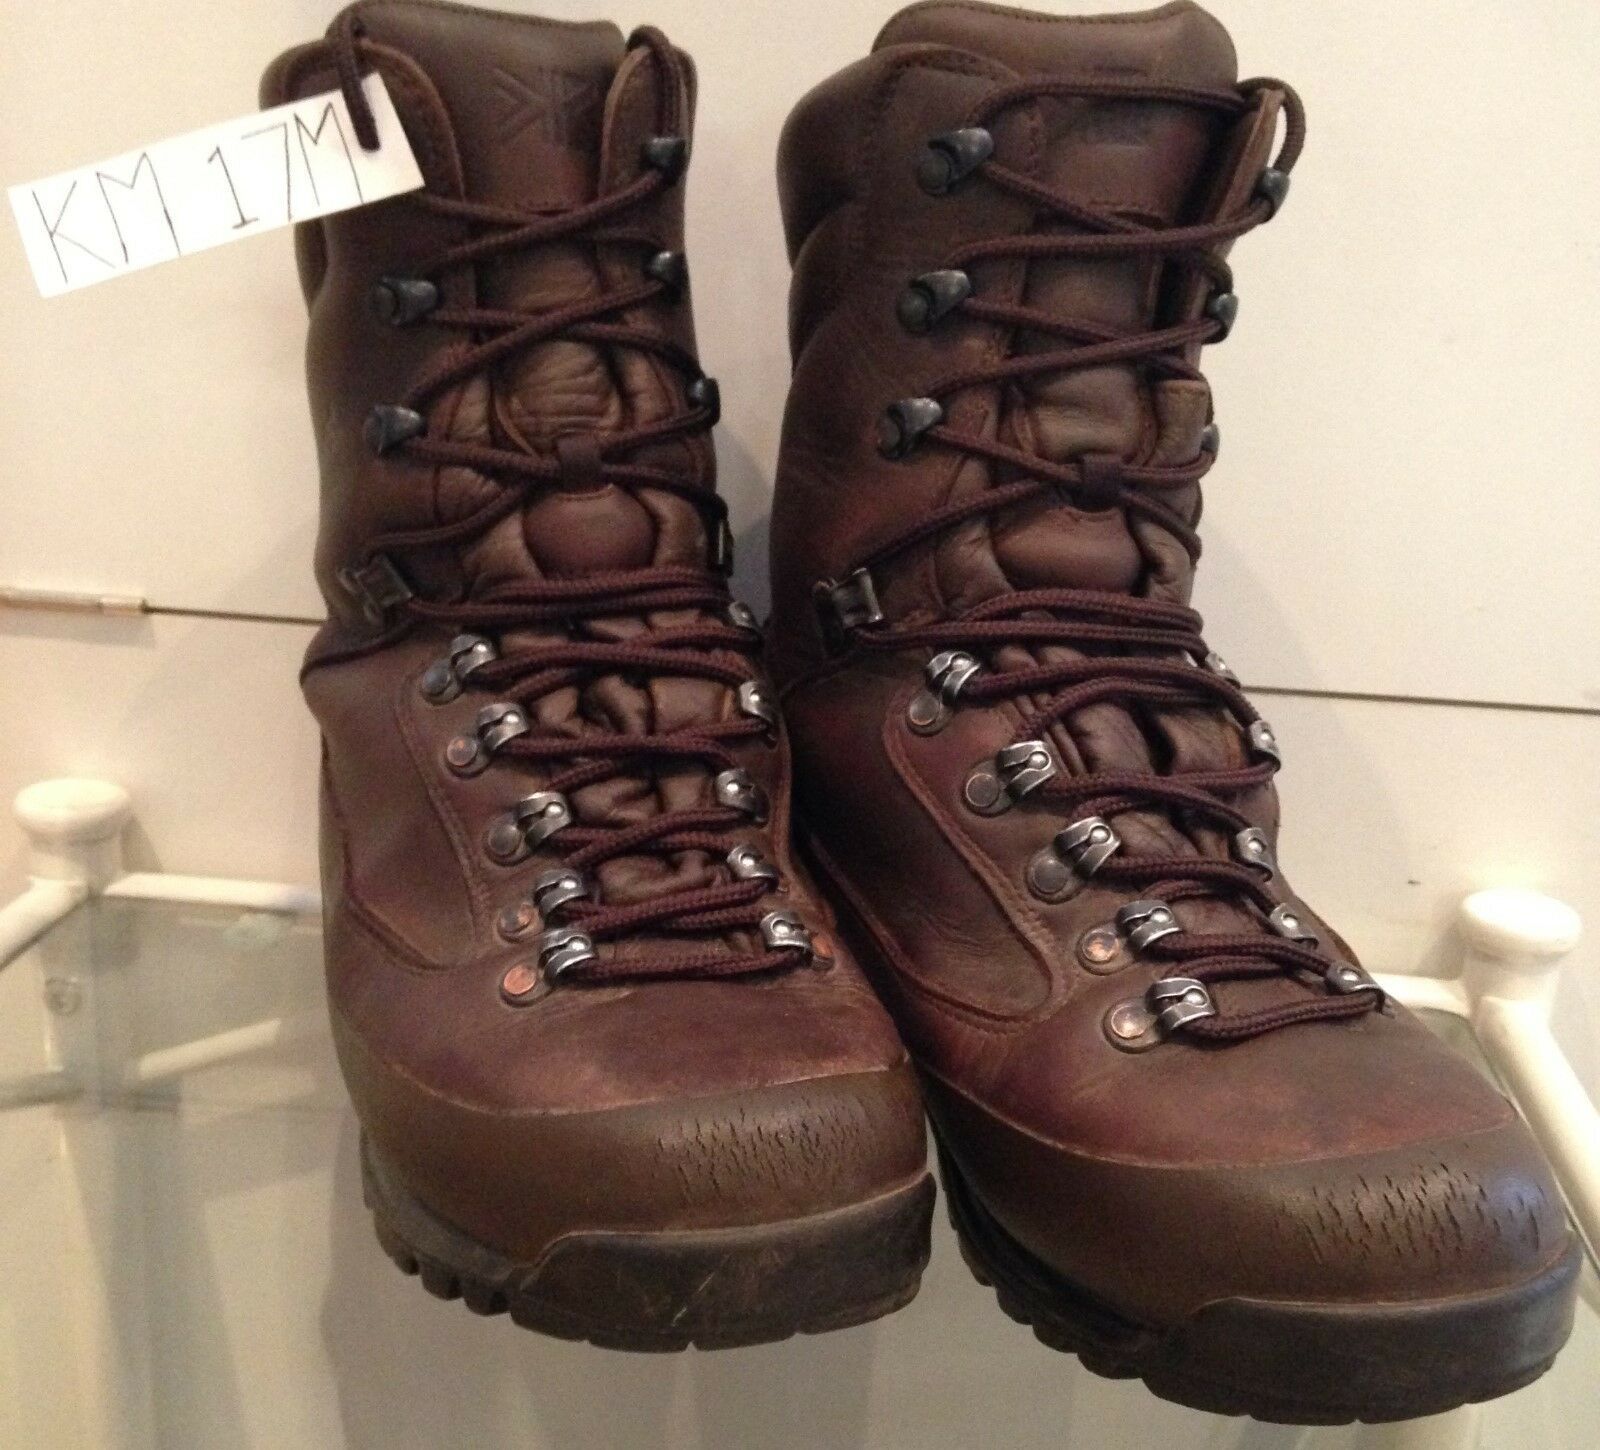 Karrimor Weather SF Braun Cold Wet Weather Karrimor GoreTex Lined Combat Stiefel 7M KM17M 02c220